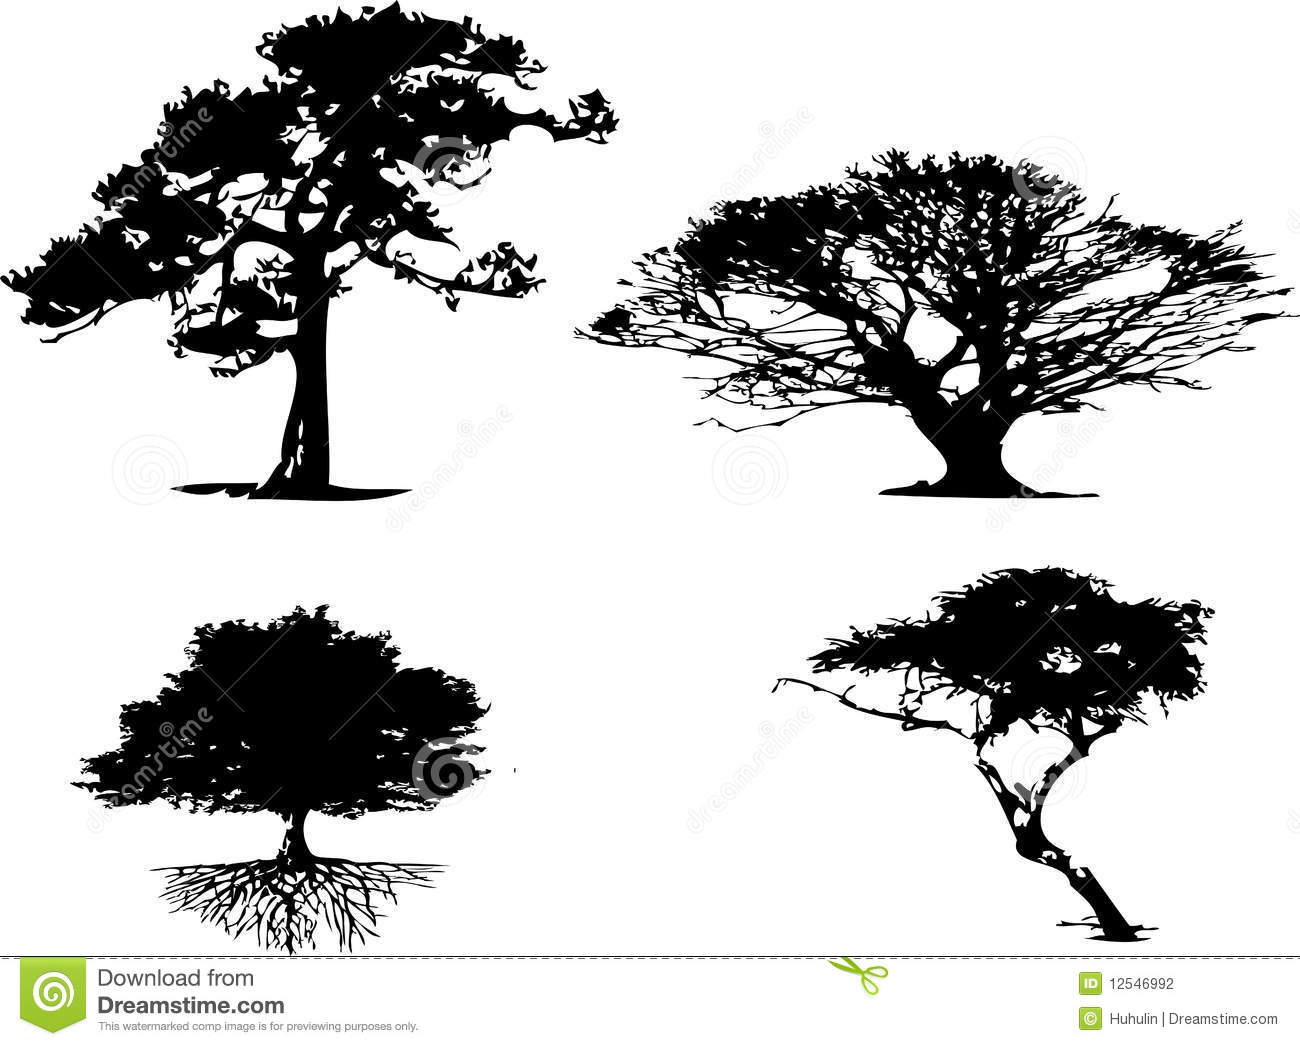 Displaying 17 gt images for different types of trees